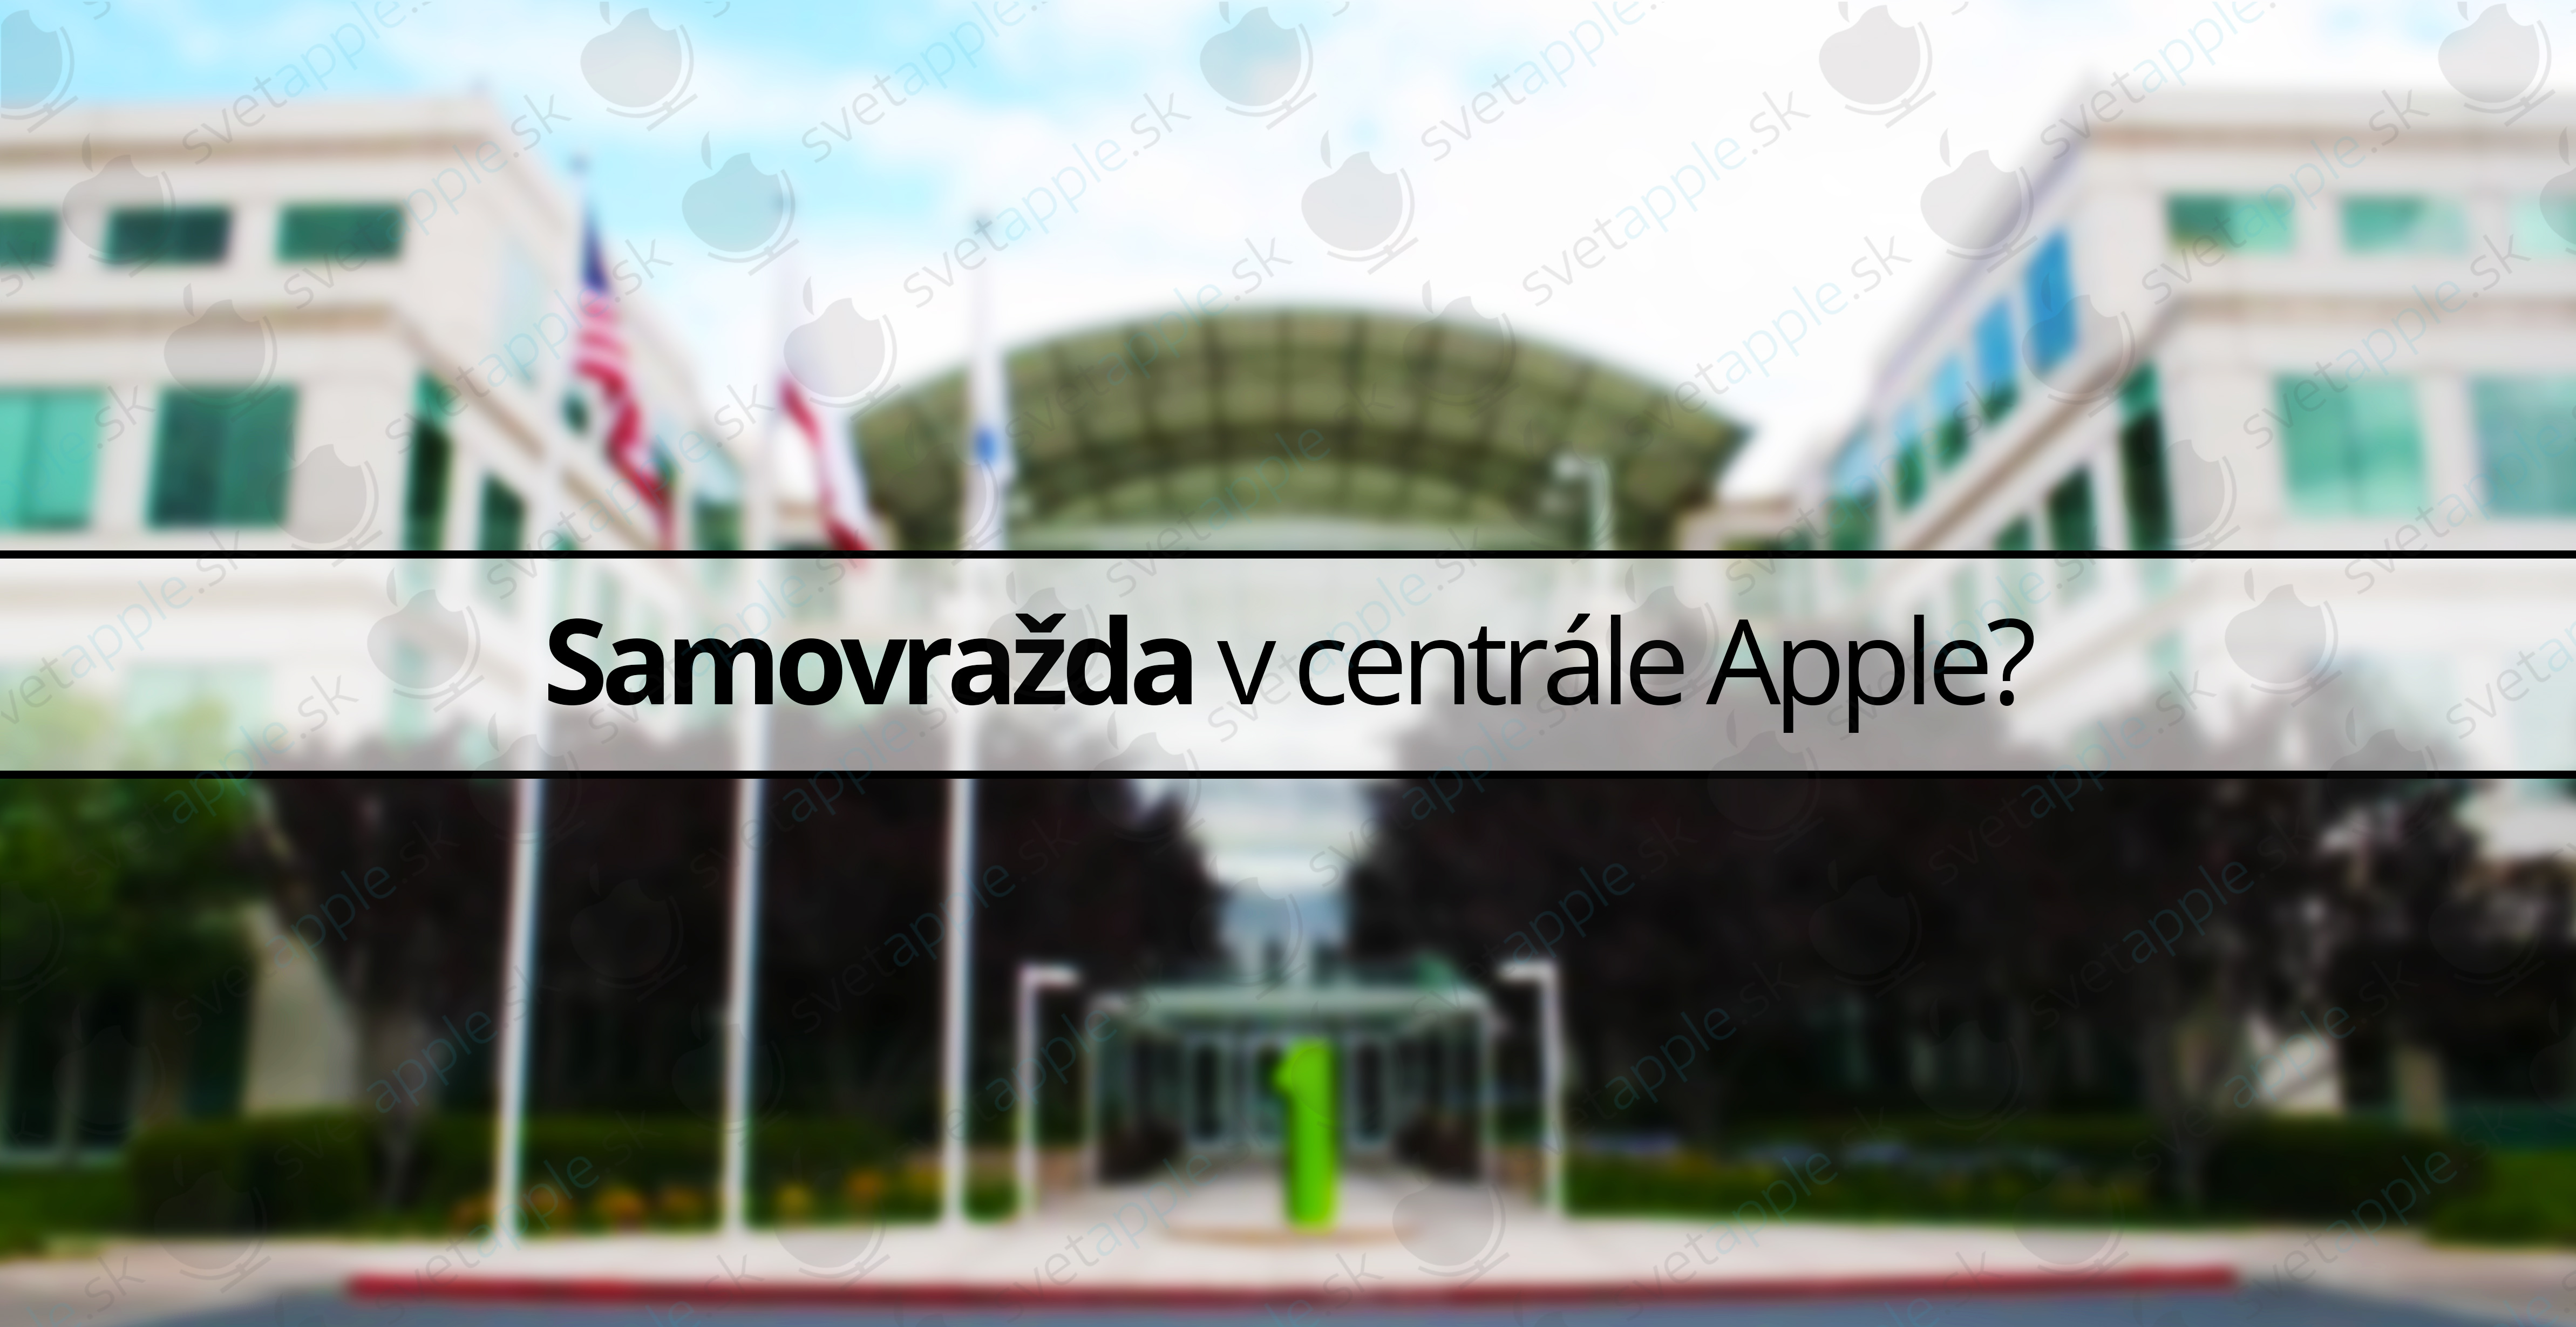 samovrazda-apple--SvetApplesamovrazda-apple--SvetApple